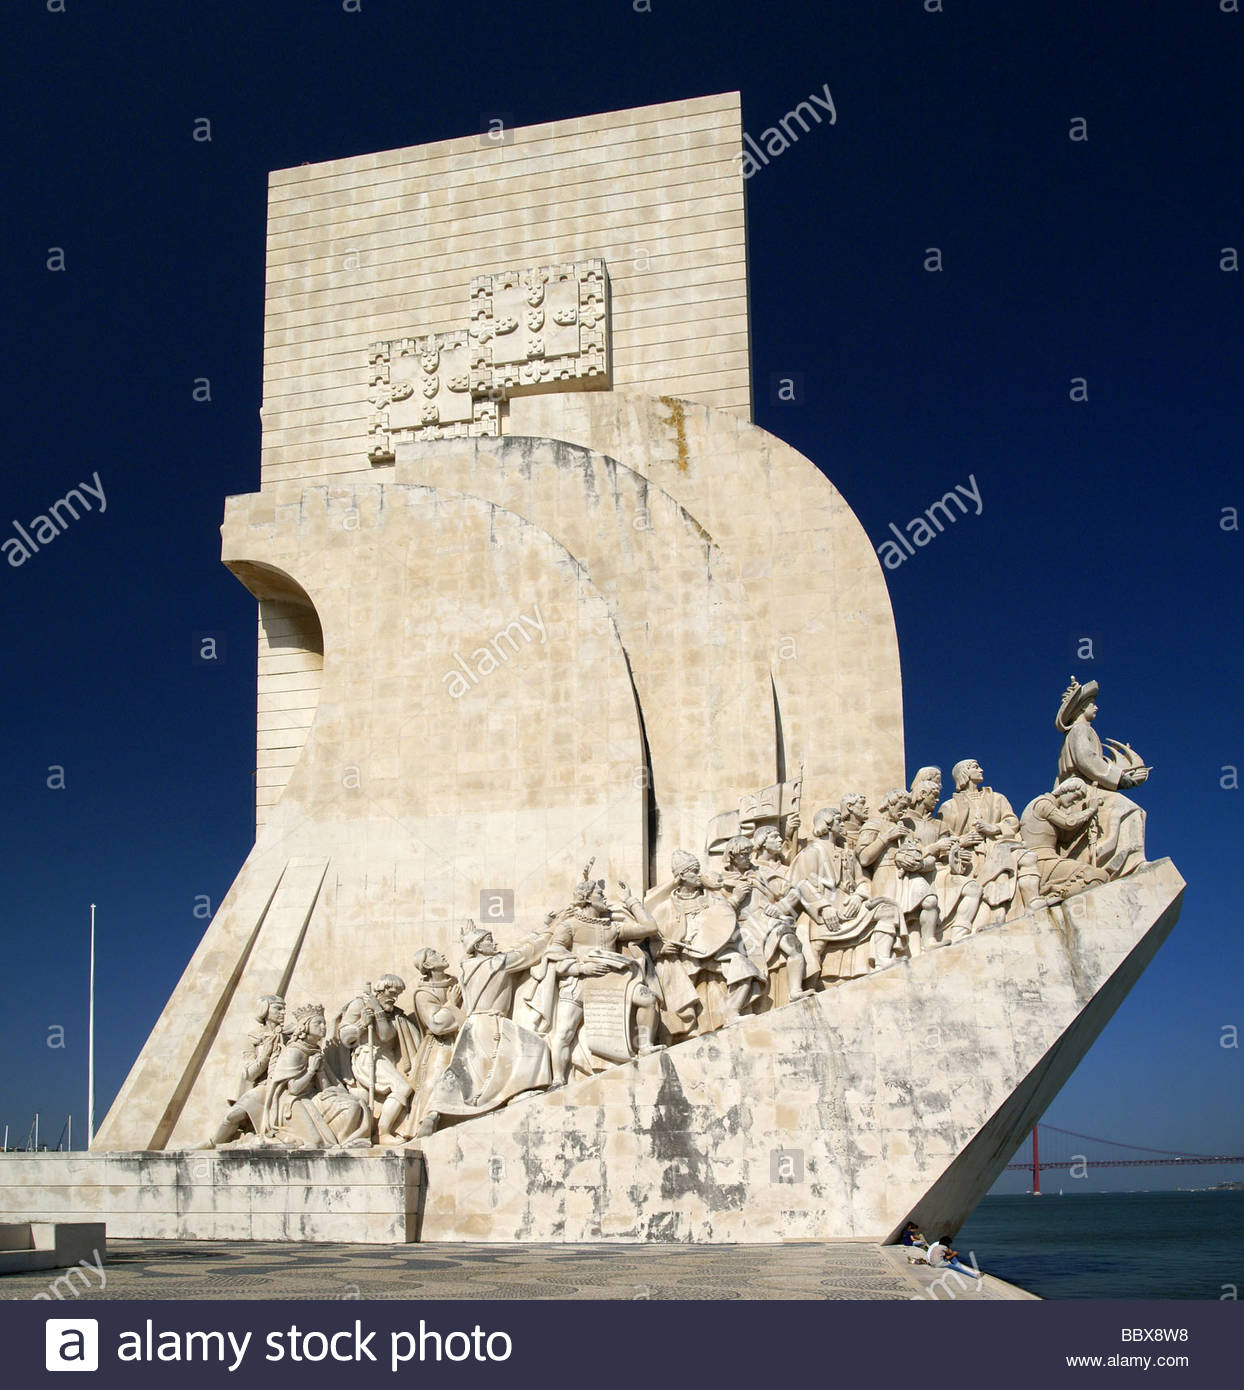 Padrao dos Descobrimentos - Lisboa | Monument to the Discoveries in the Belém parish of Lisbon - Portugal - Stock Image